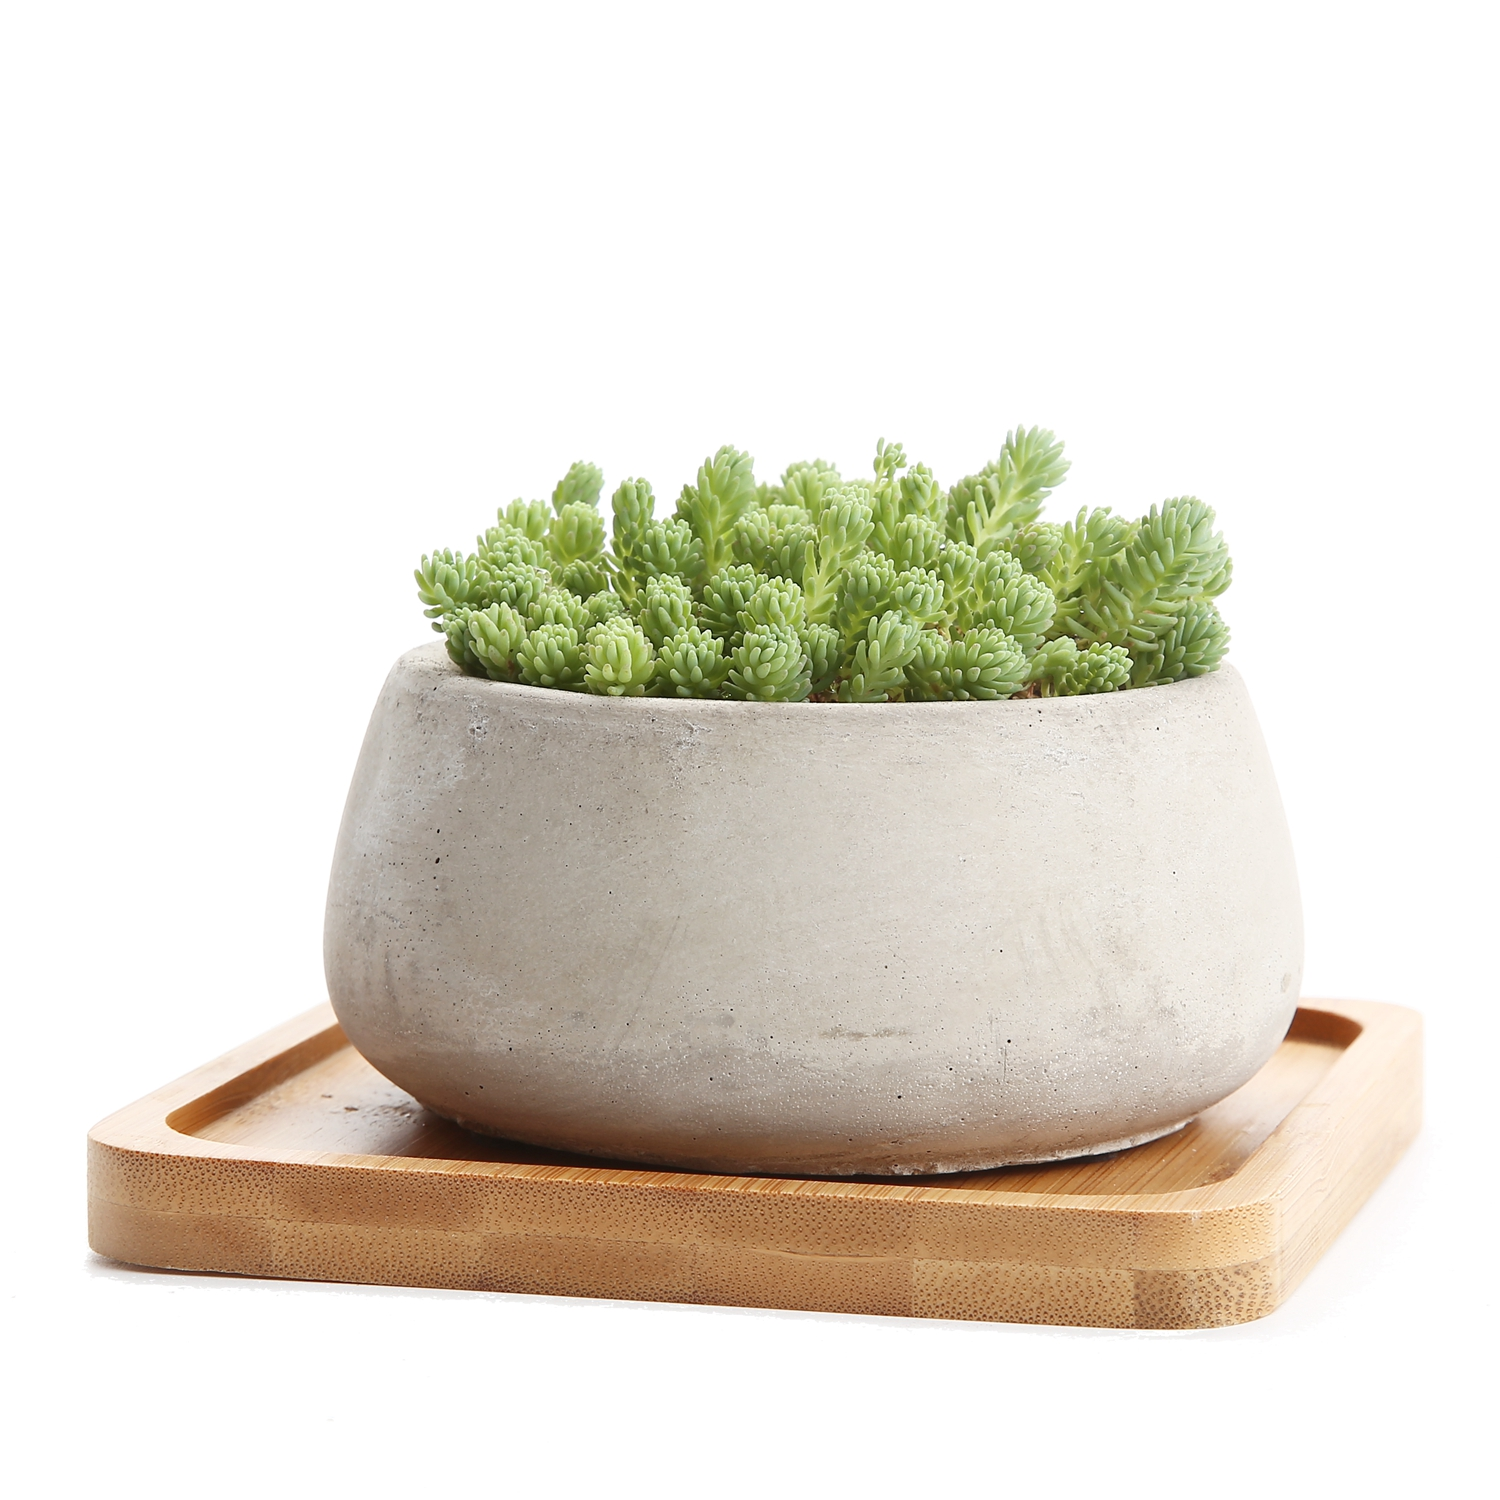 T4u 3 5 inch cement serial big round sucuulent cactus plant pots flower pots planters containers with bamboo tray grey in flower pots planters from home